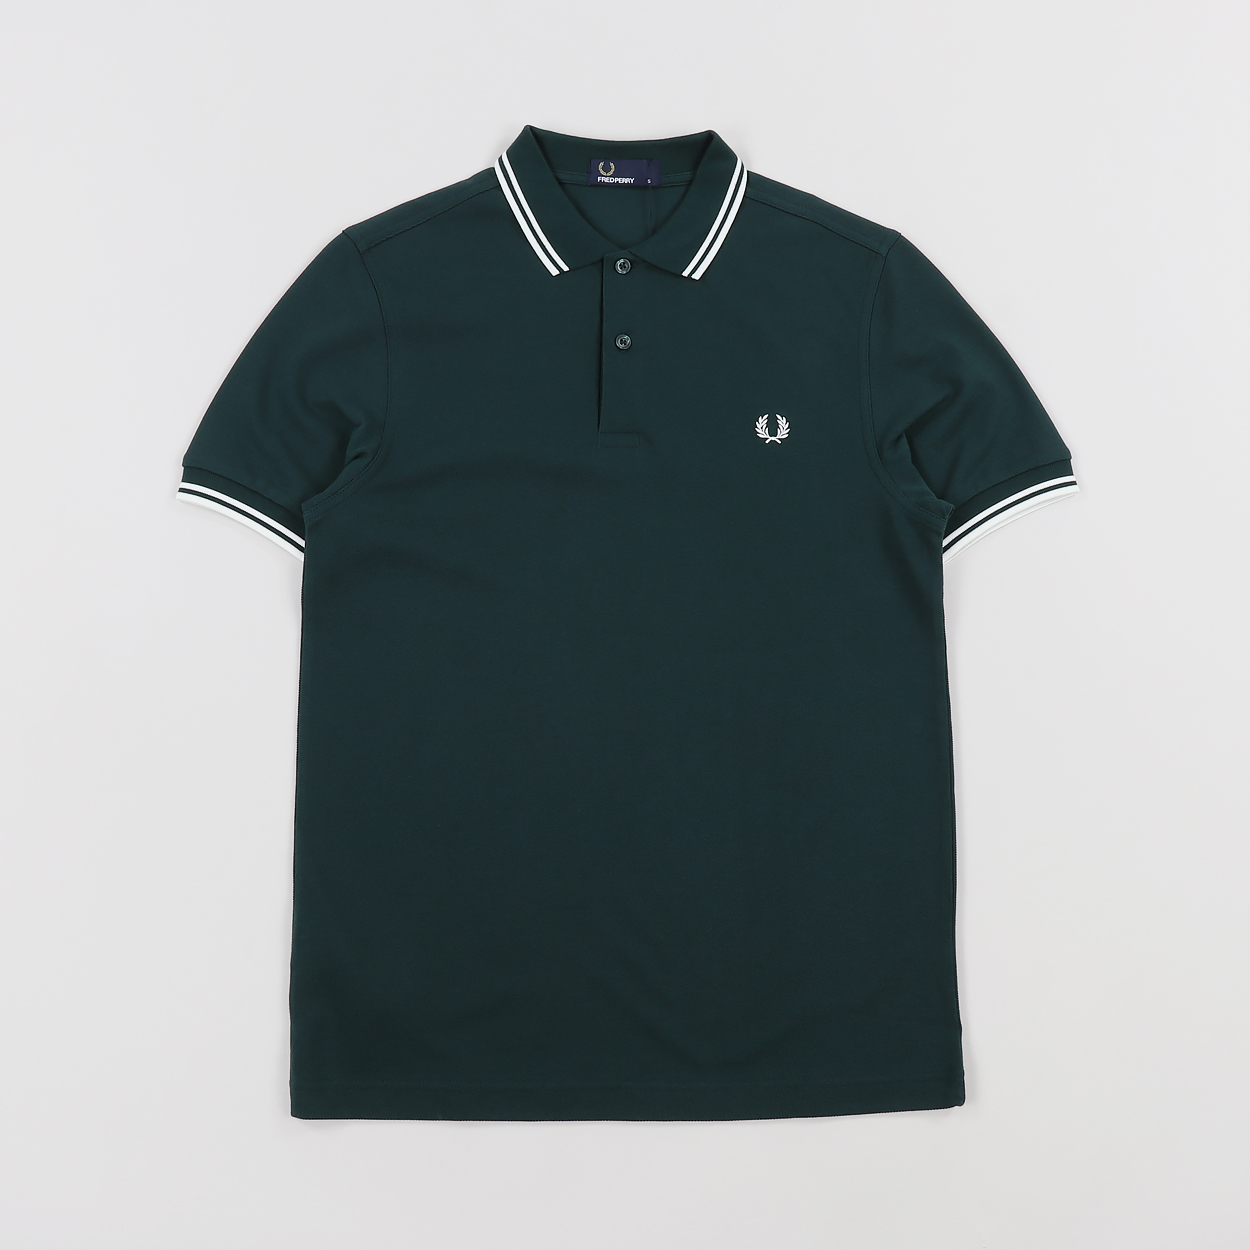 61bb5671 Fred Perry Mens M3600 Twin Tipped Polo Shirt Dark Pine Green £48.00